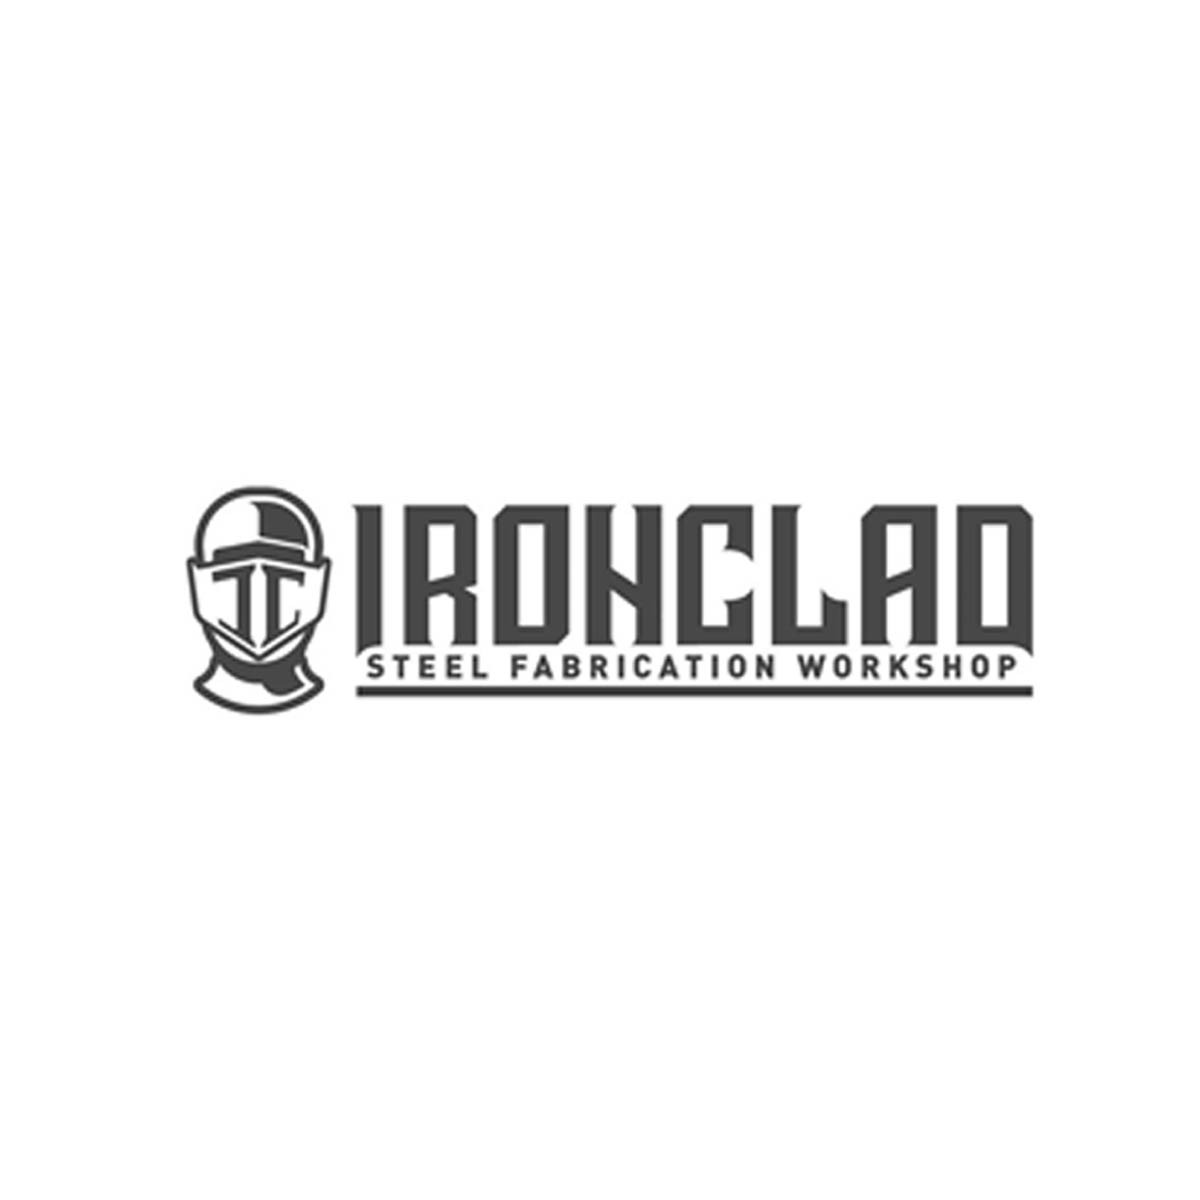 Ironclad Steel Fabrication Workshop